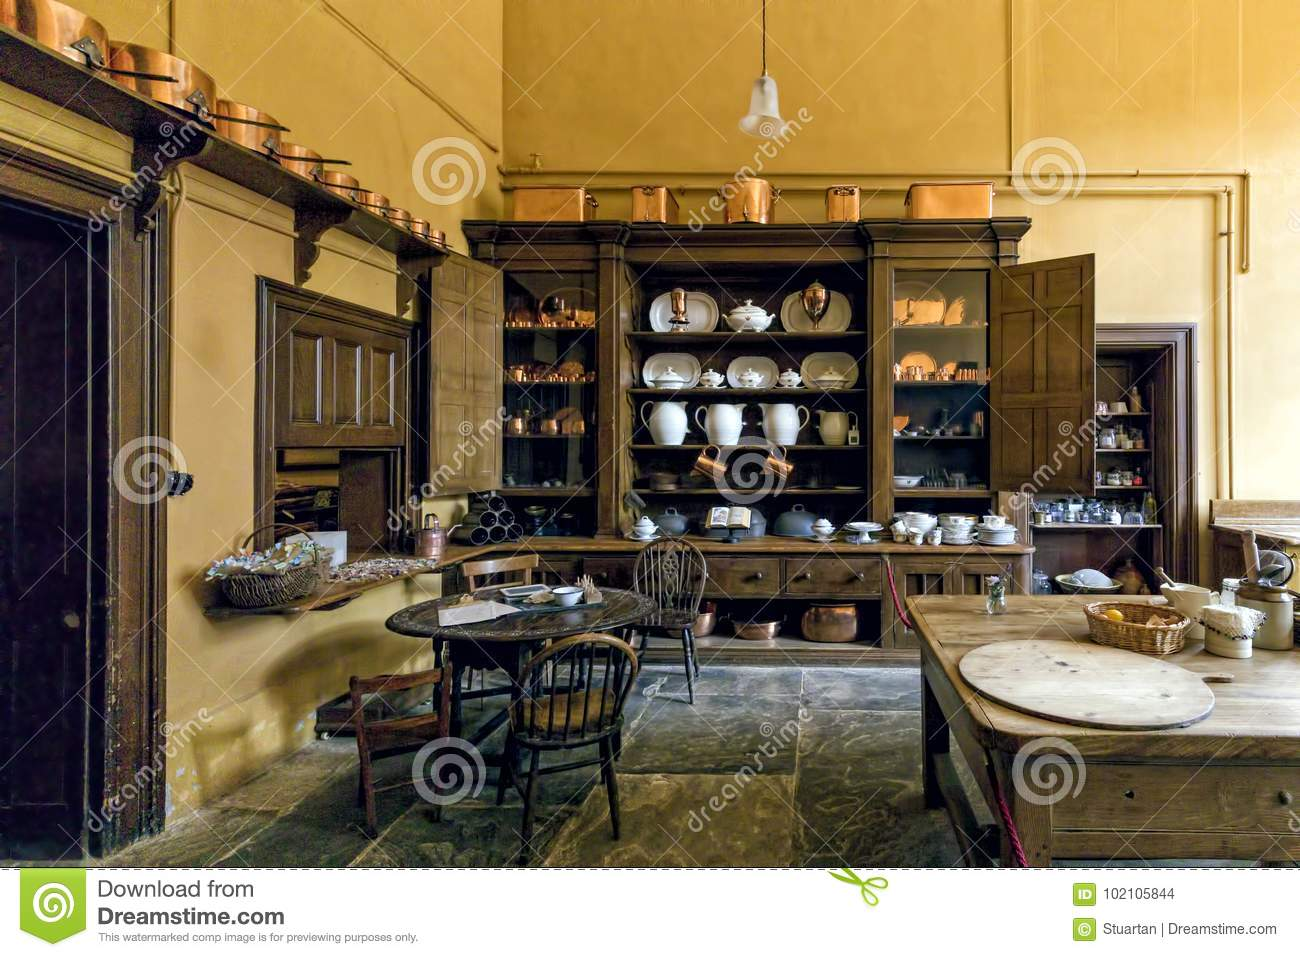 660 Victorian Kitchen Photos Free Royalty Stock From Dreamstime